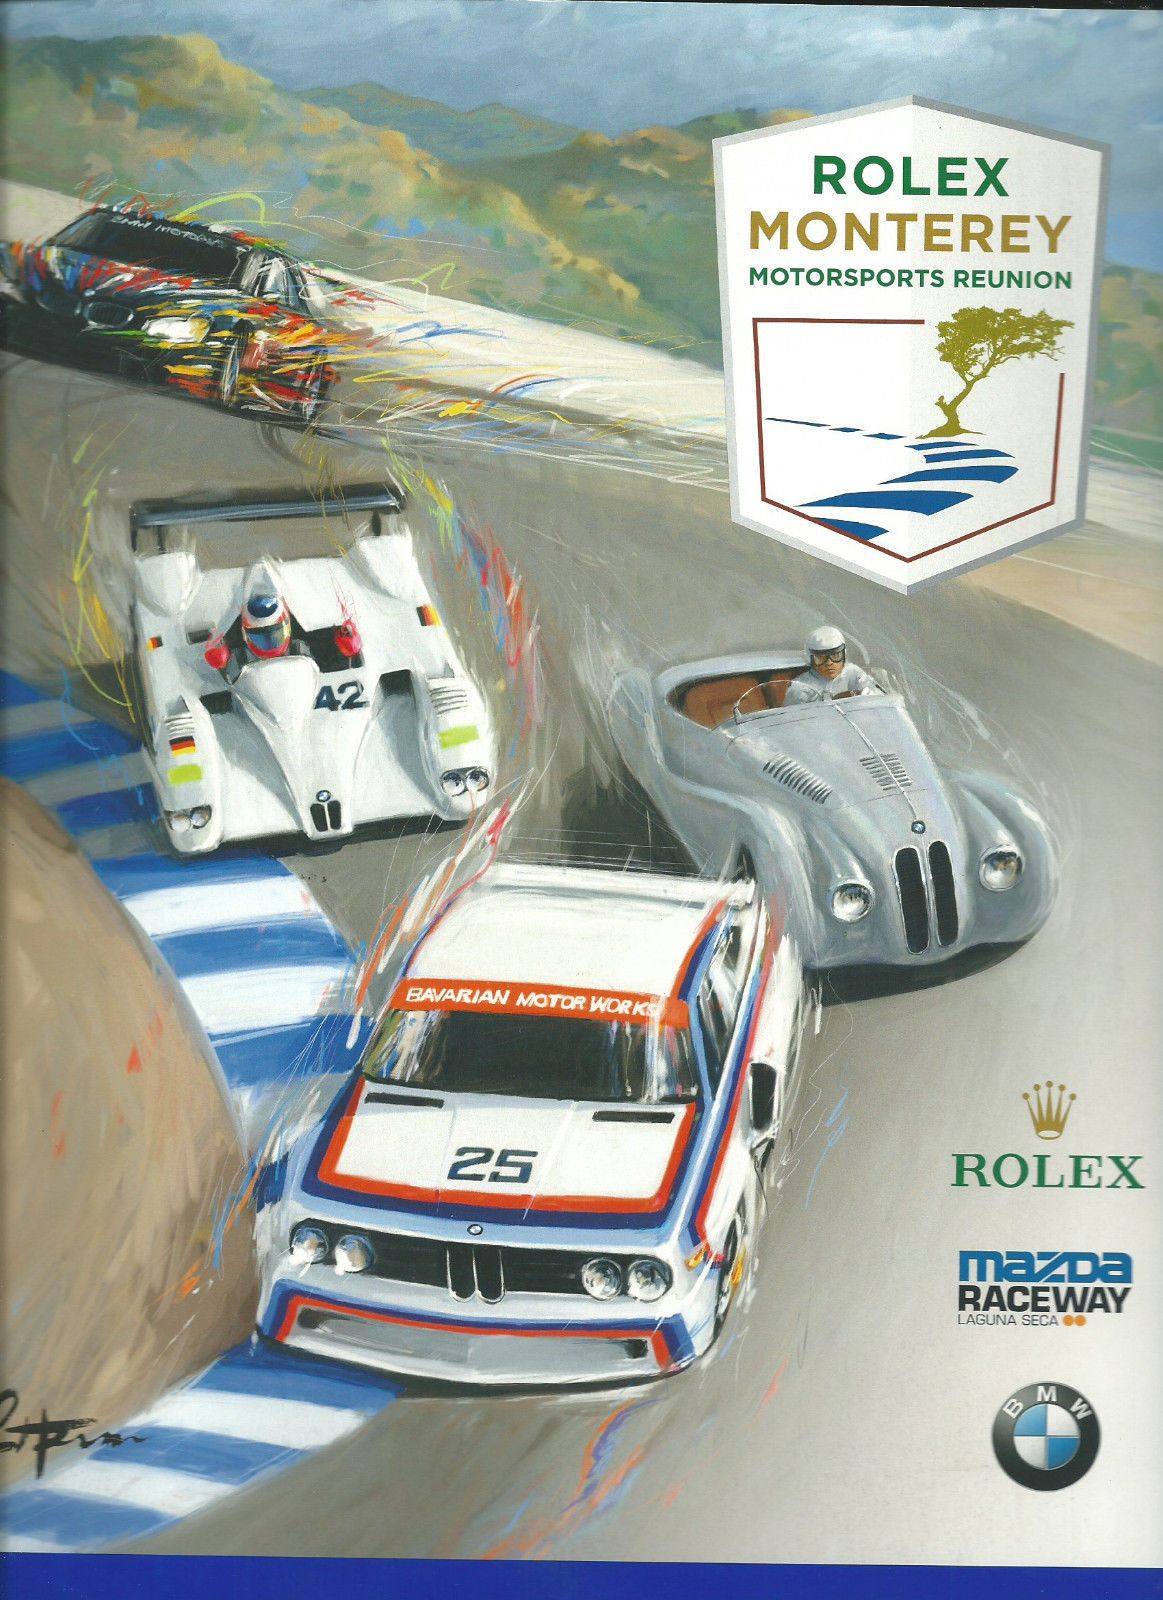 2015 Program Rolex Monterey Historic Laguna Seca - BMW https://t.co/C1BDpQTMIo https://t.co/z2KWQ66BSl